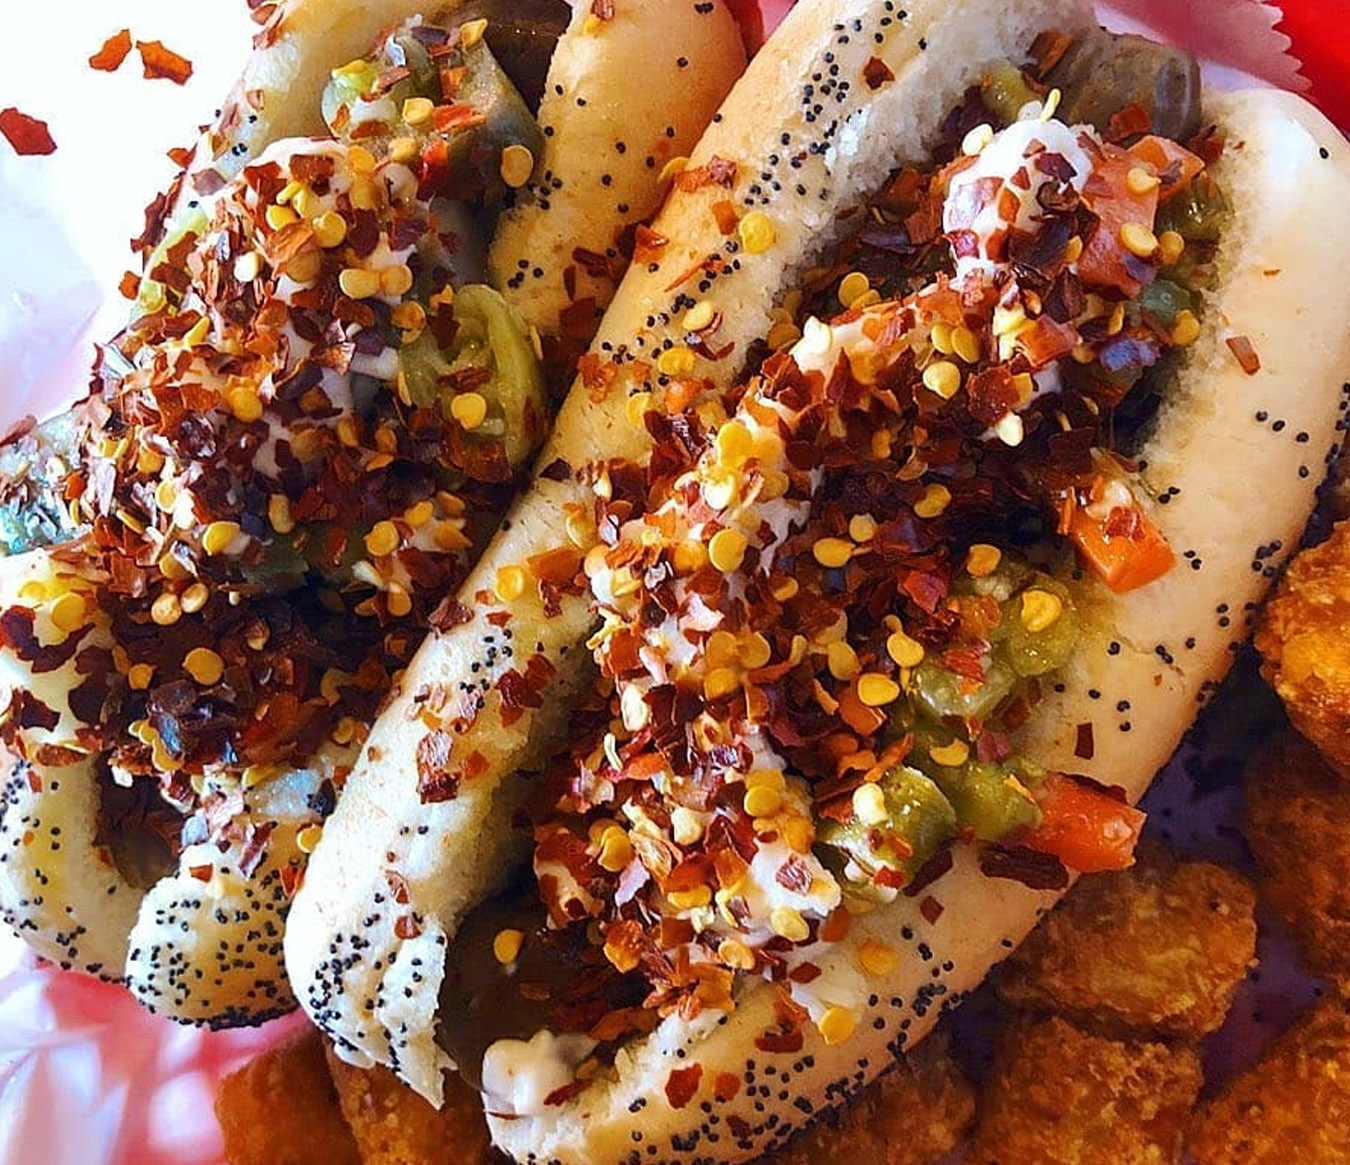 Where to Eat In Columbus - Dirty Frank's Hot Dog Palace